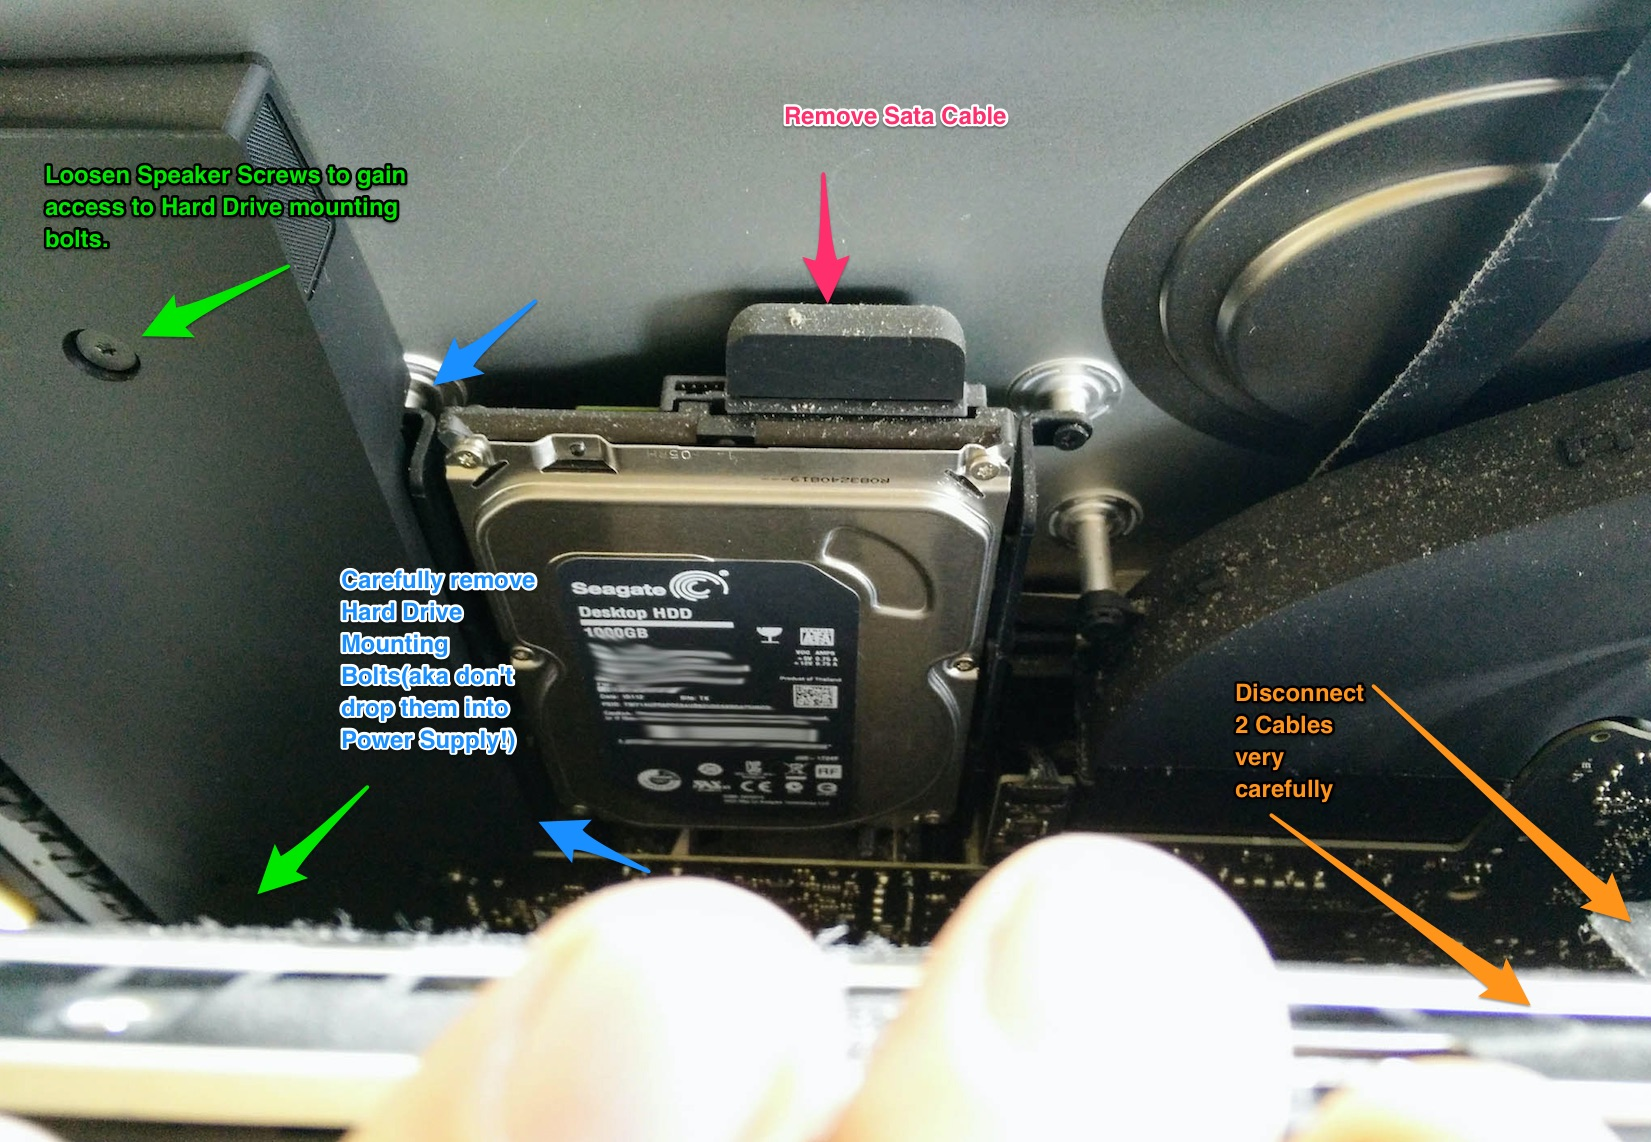 iMac 27 2013 Fusion Hard Drive Replacement with SSD